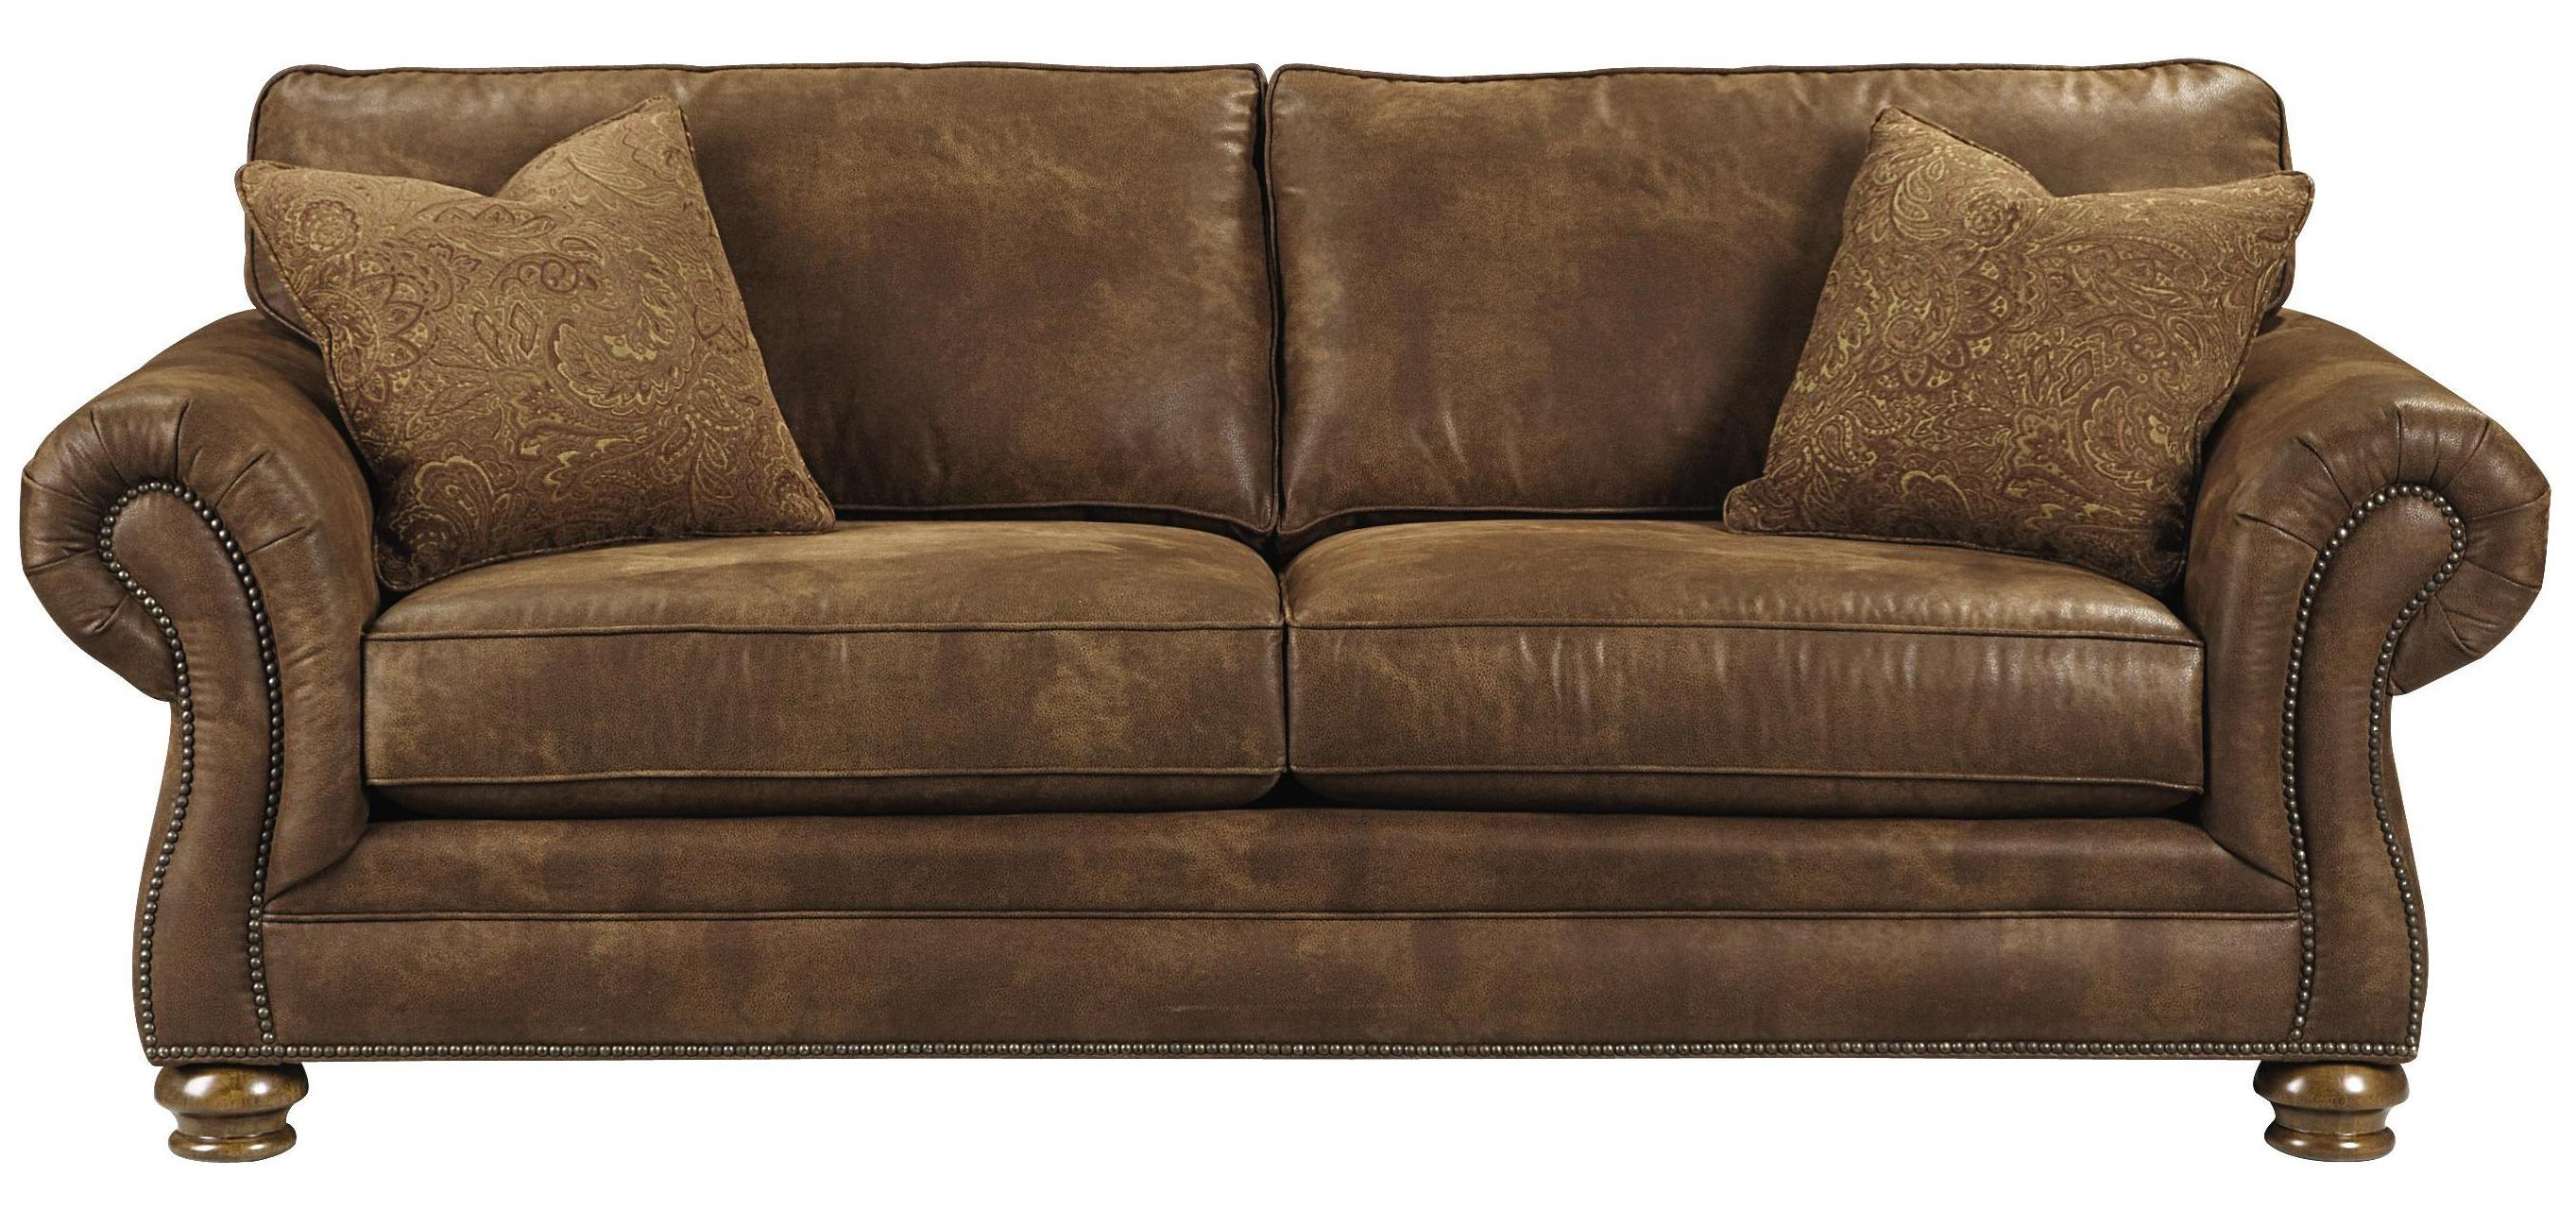 Bassett Sonoma Upholstered Sofa with Rolled Arms AHFA Sofa